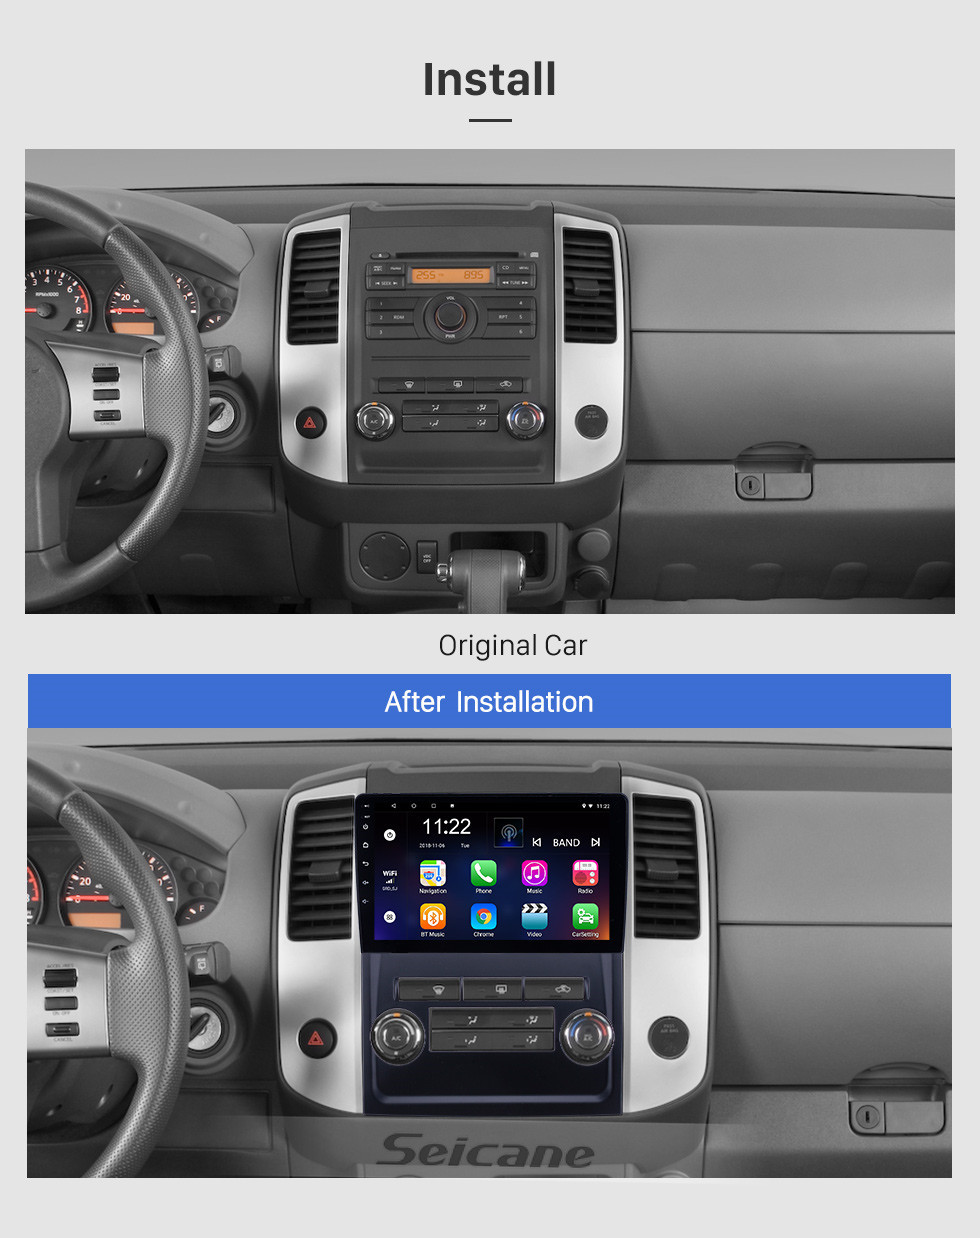 Seicane OEM 9 inch Android 10.0 Radio for 2009-2012 Nissan Frontier/Xterra Bluetooth WIFI HD Touchscreen GPS Navigation support Carplay DVR Rear camera